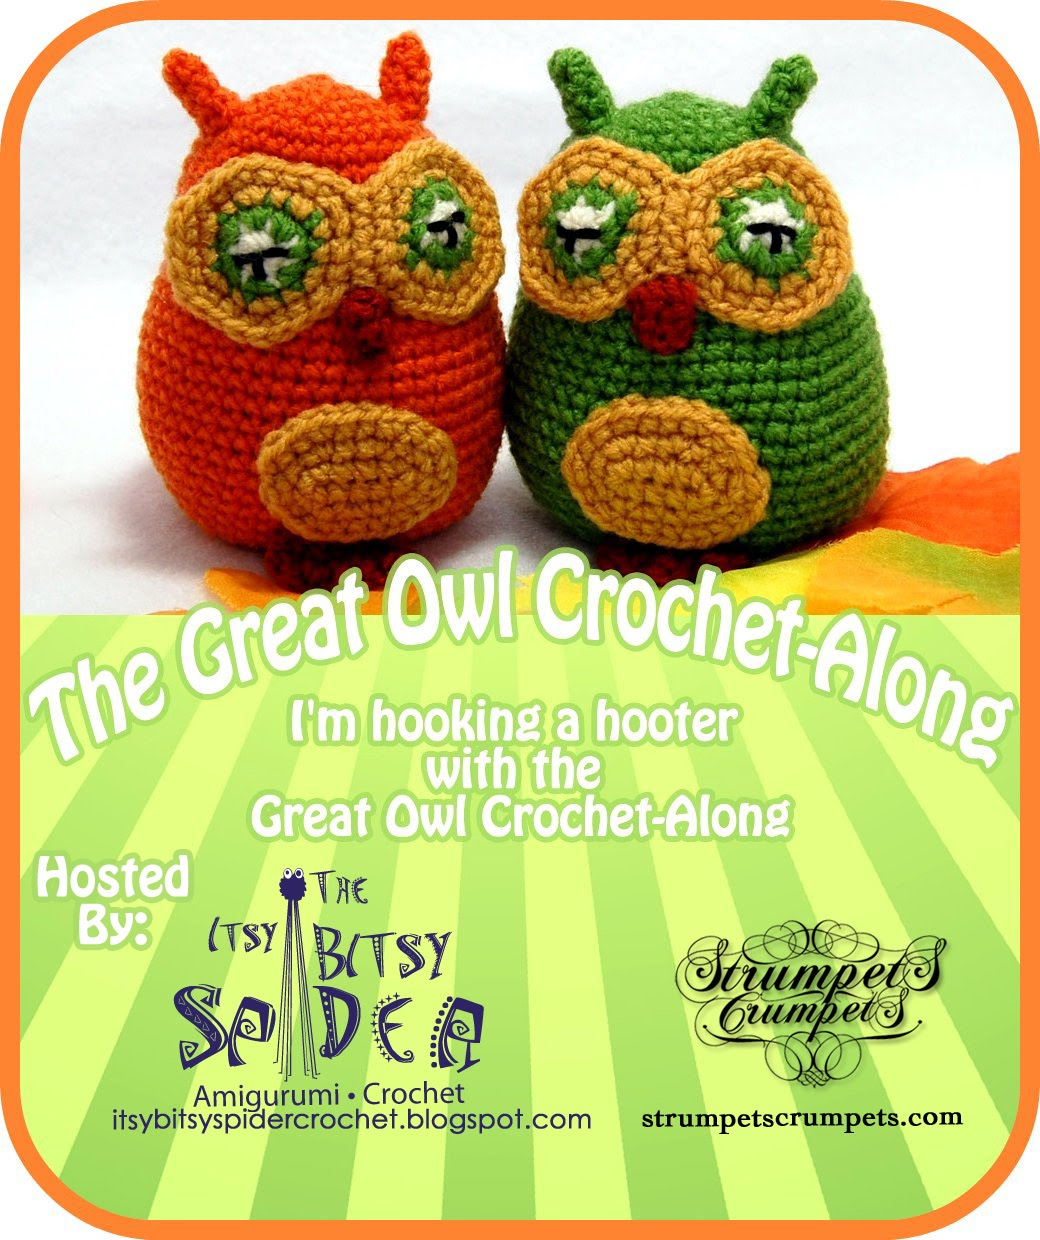 The Itsy Bitsy Spider Crochet: The Great Owl Crochet-Along